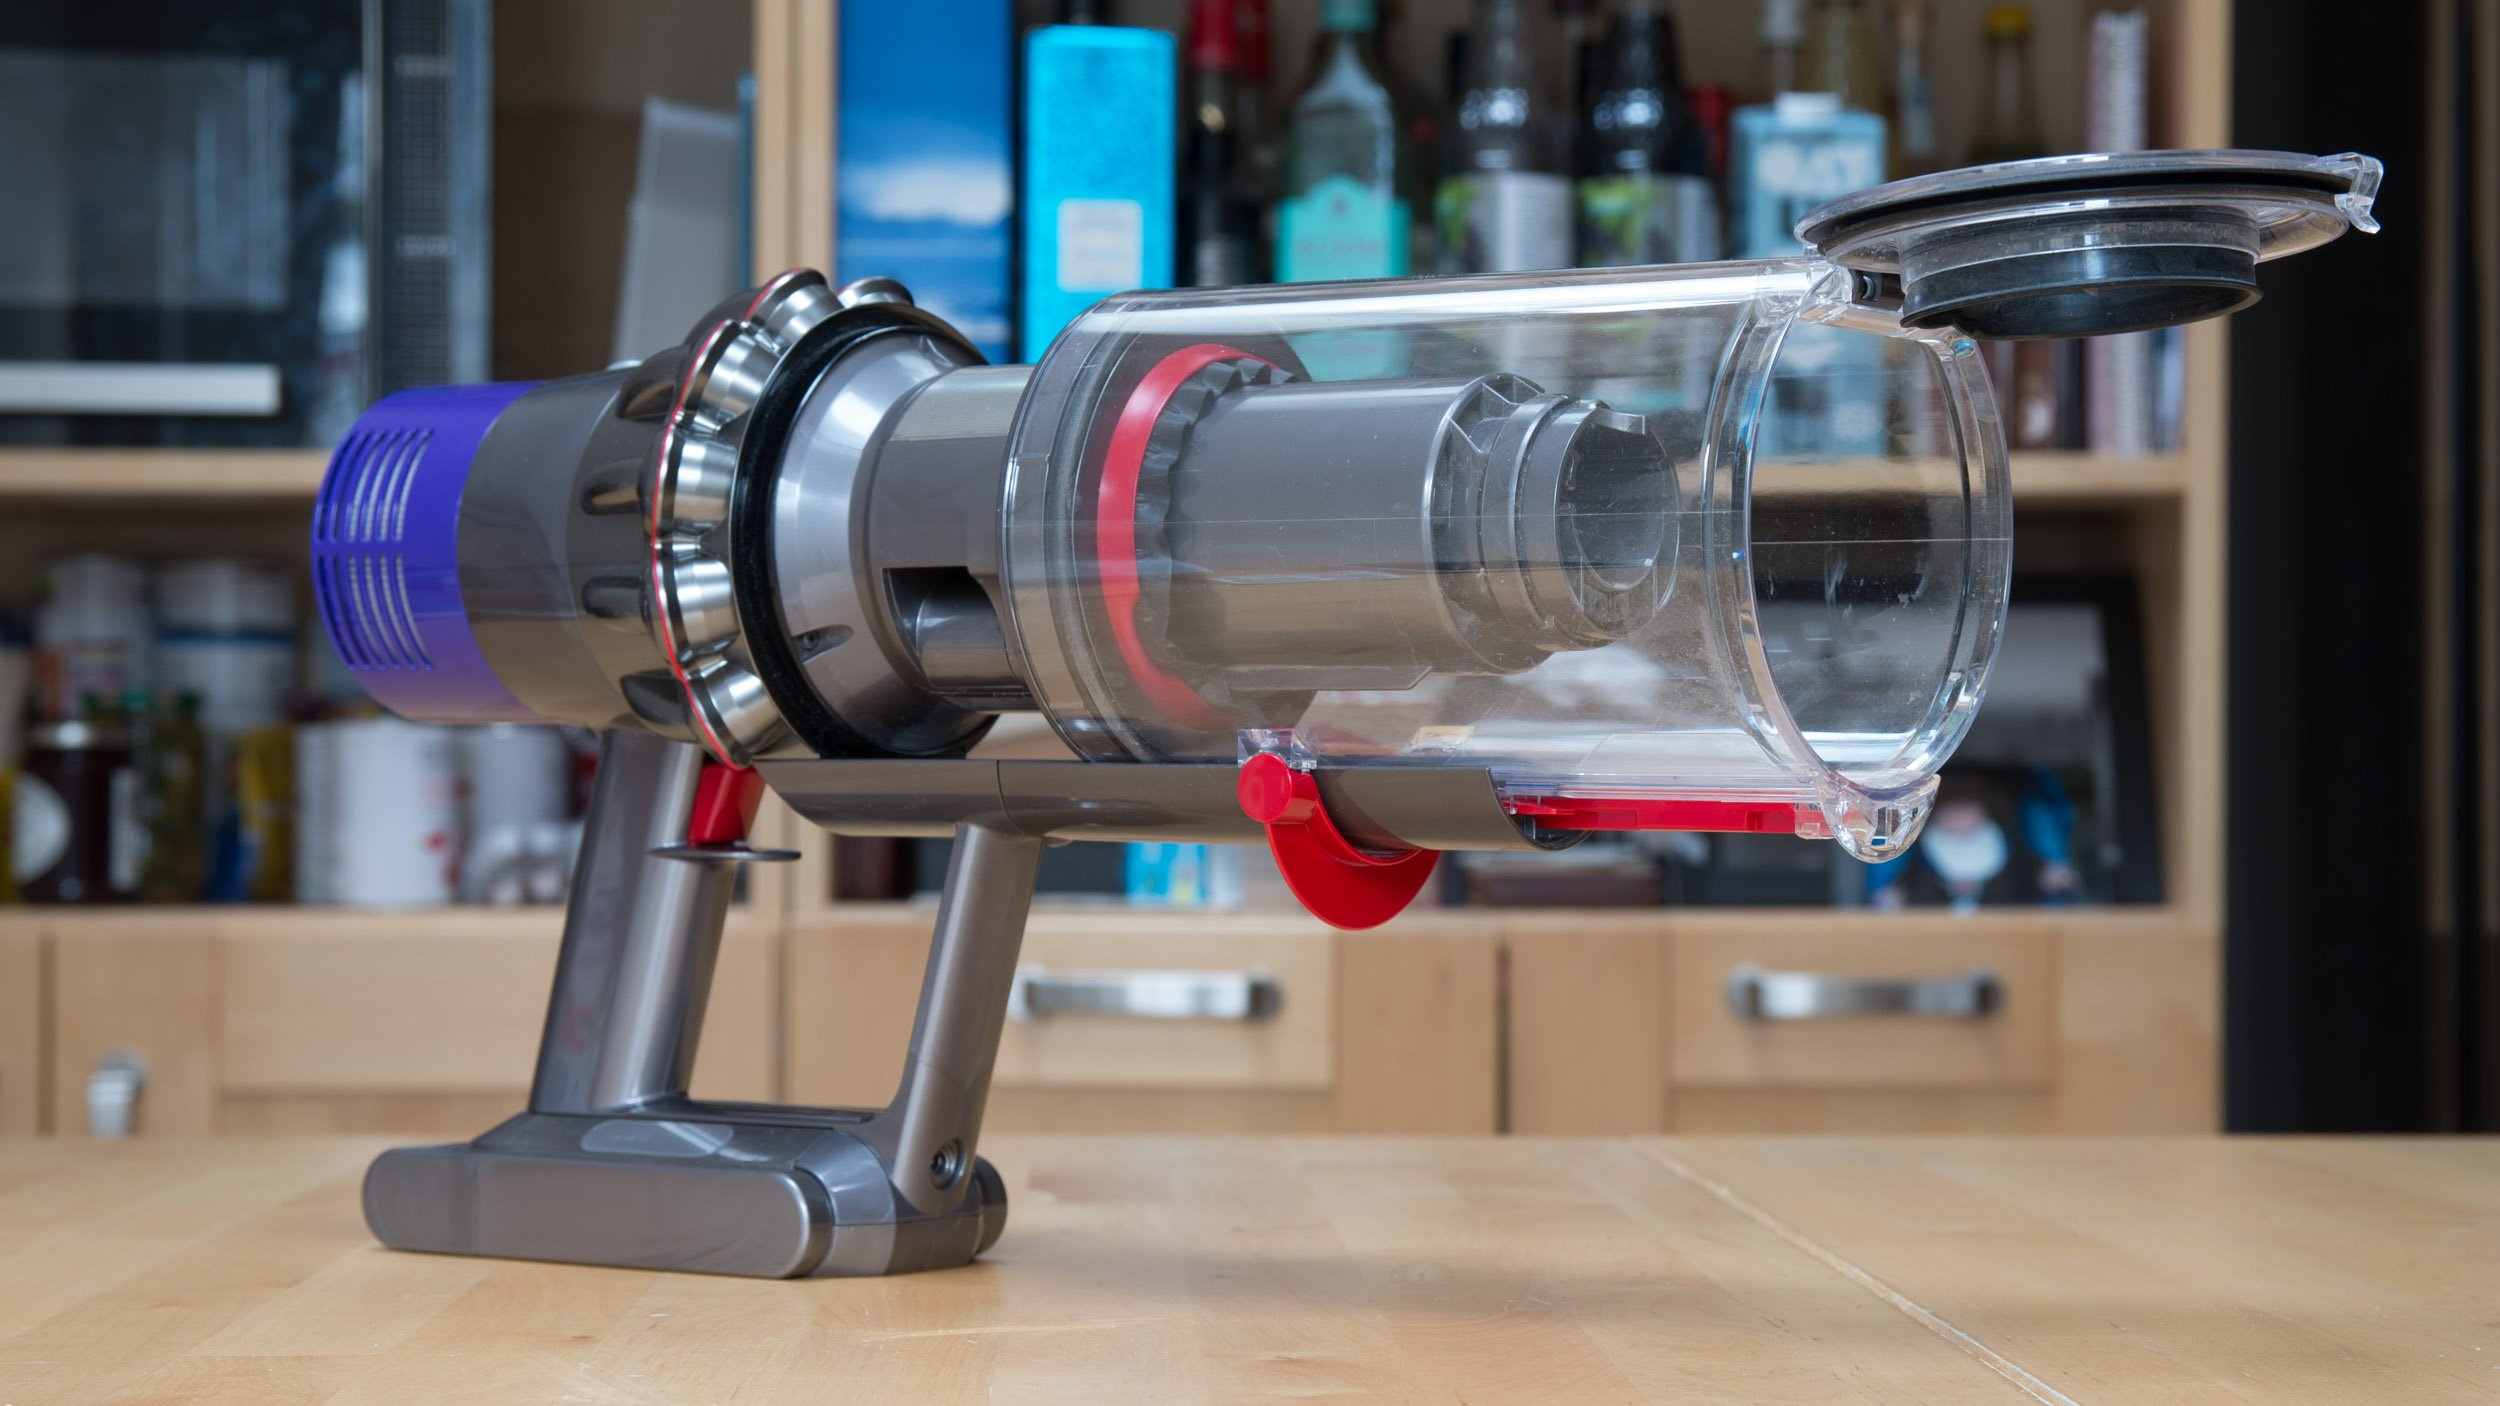 Dyson Cyclone V10 The Upright Vacuum Killer Expert Reviews